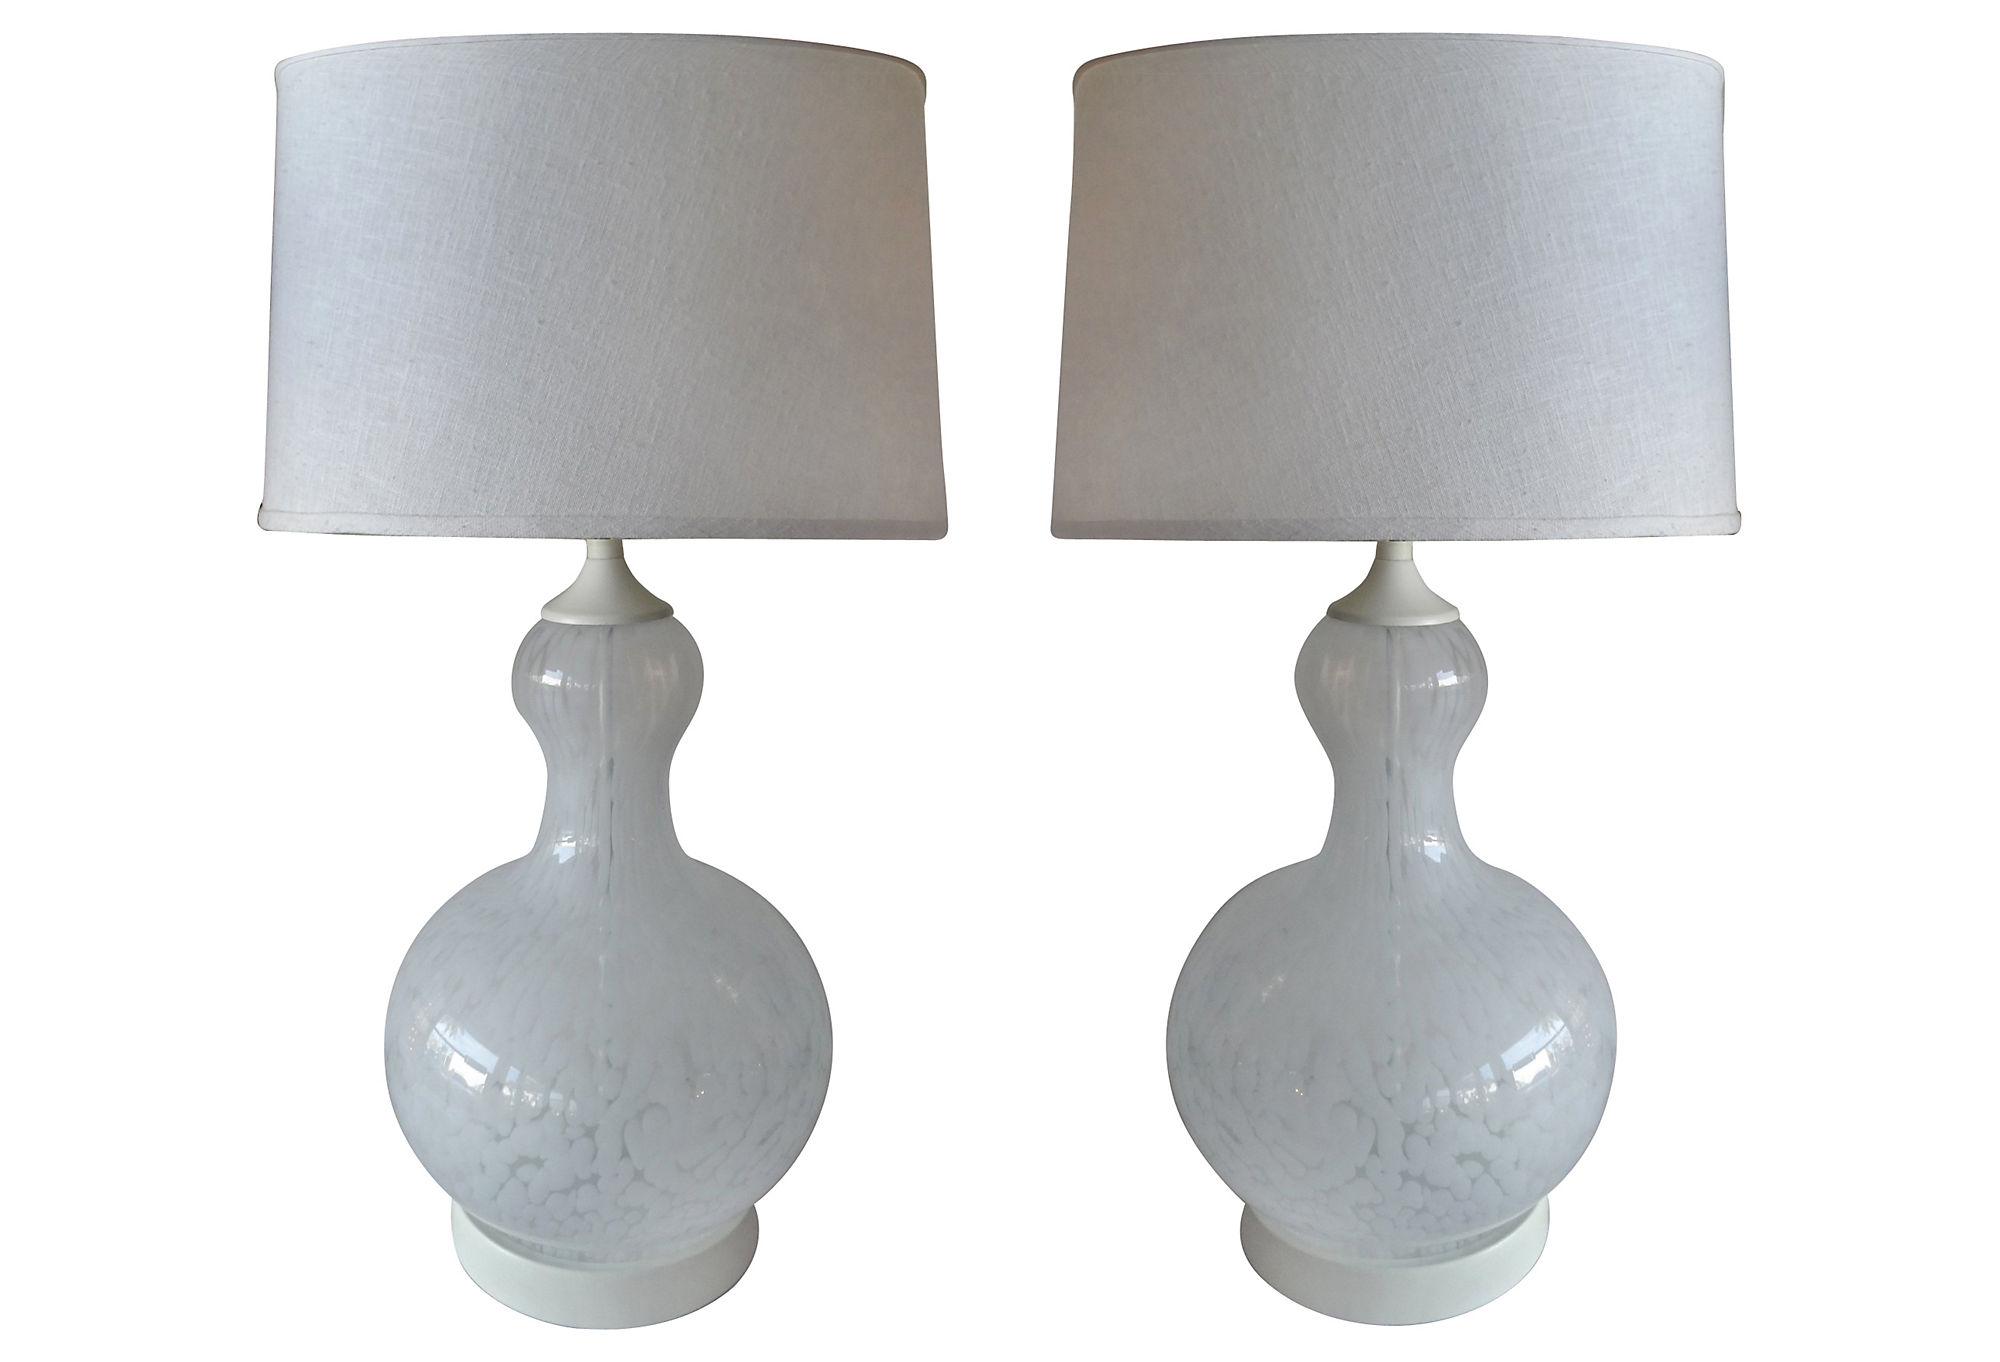 Pair Of Mottled Murano Glass Table Lamps